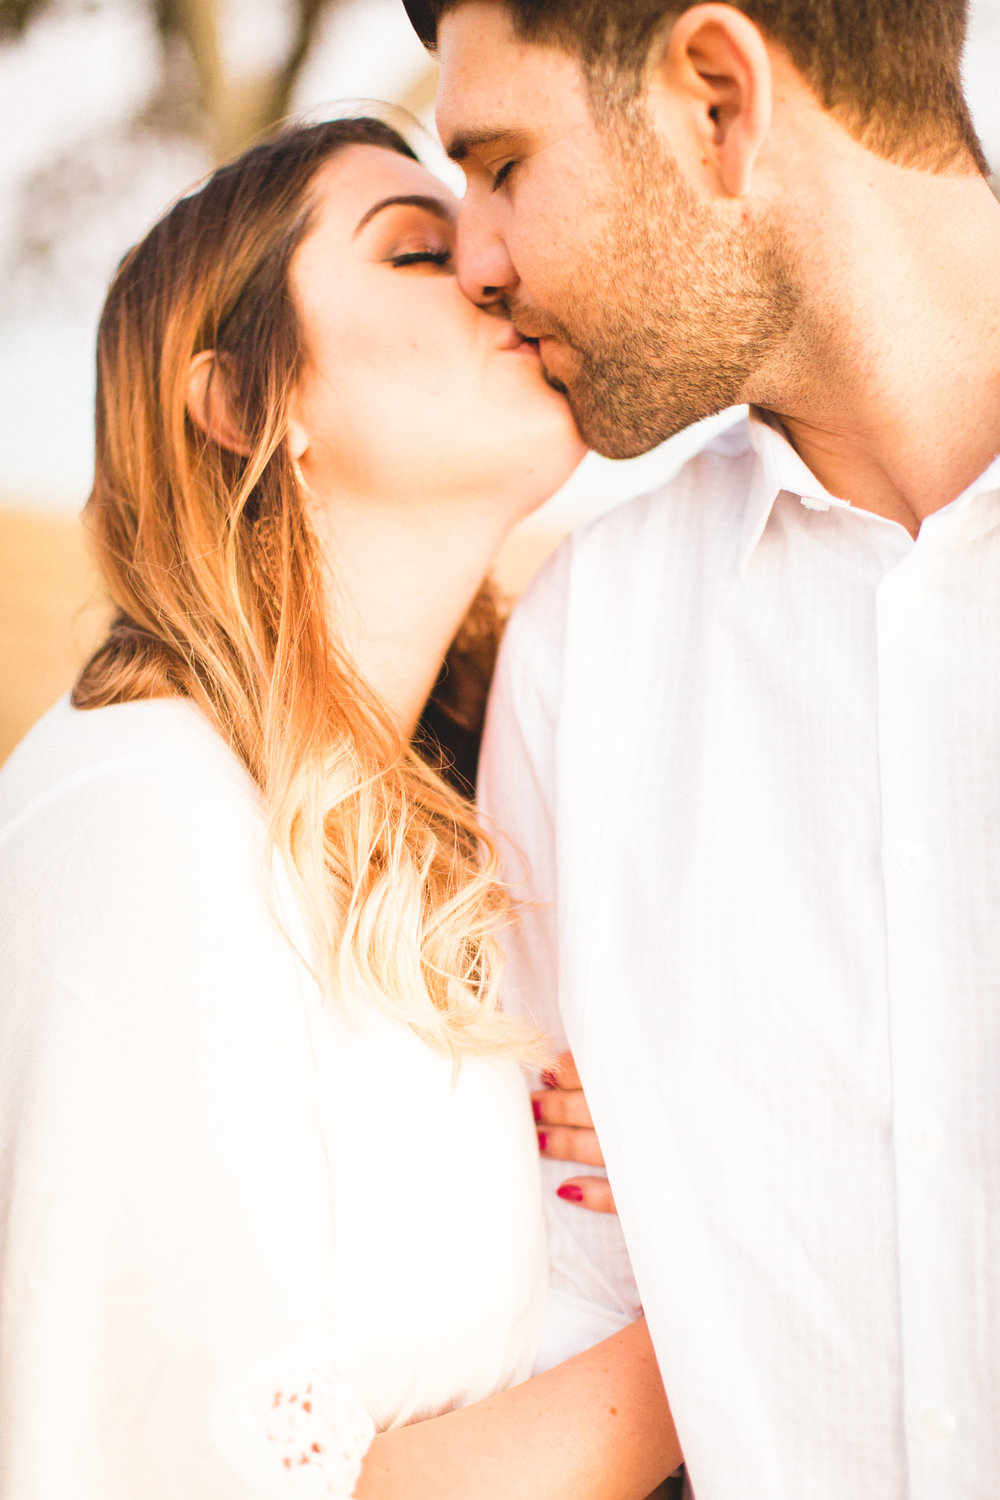 the-light-and-glass-wedding-engagement-photography-20160712-20-23-32.jpg